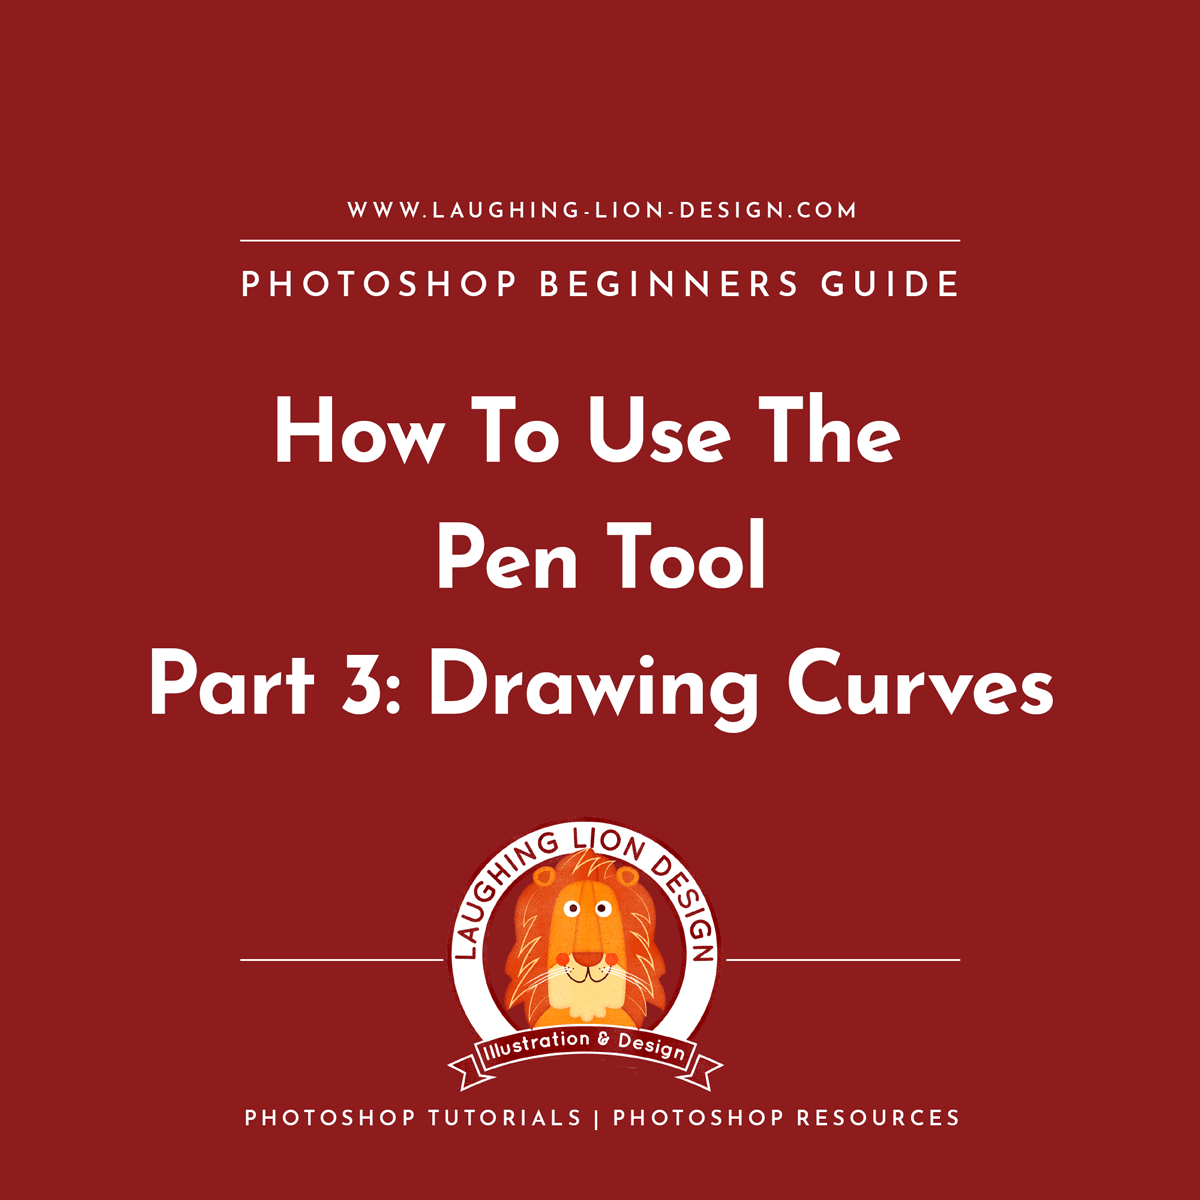 Beginners guide to using the pen tool in photoshop part 3 how to use the pen tool in photoshop baditri Choice Image